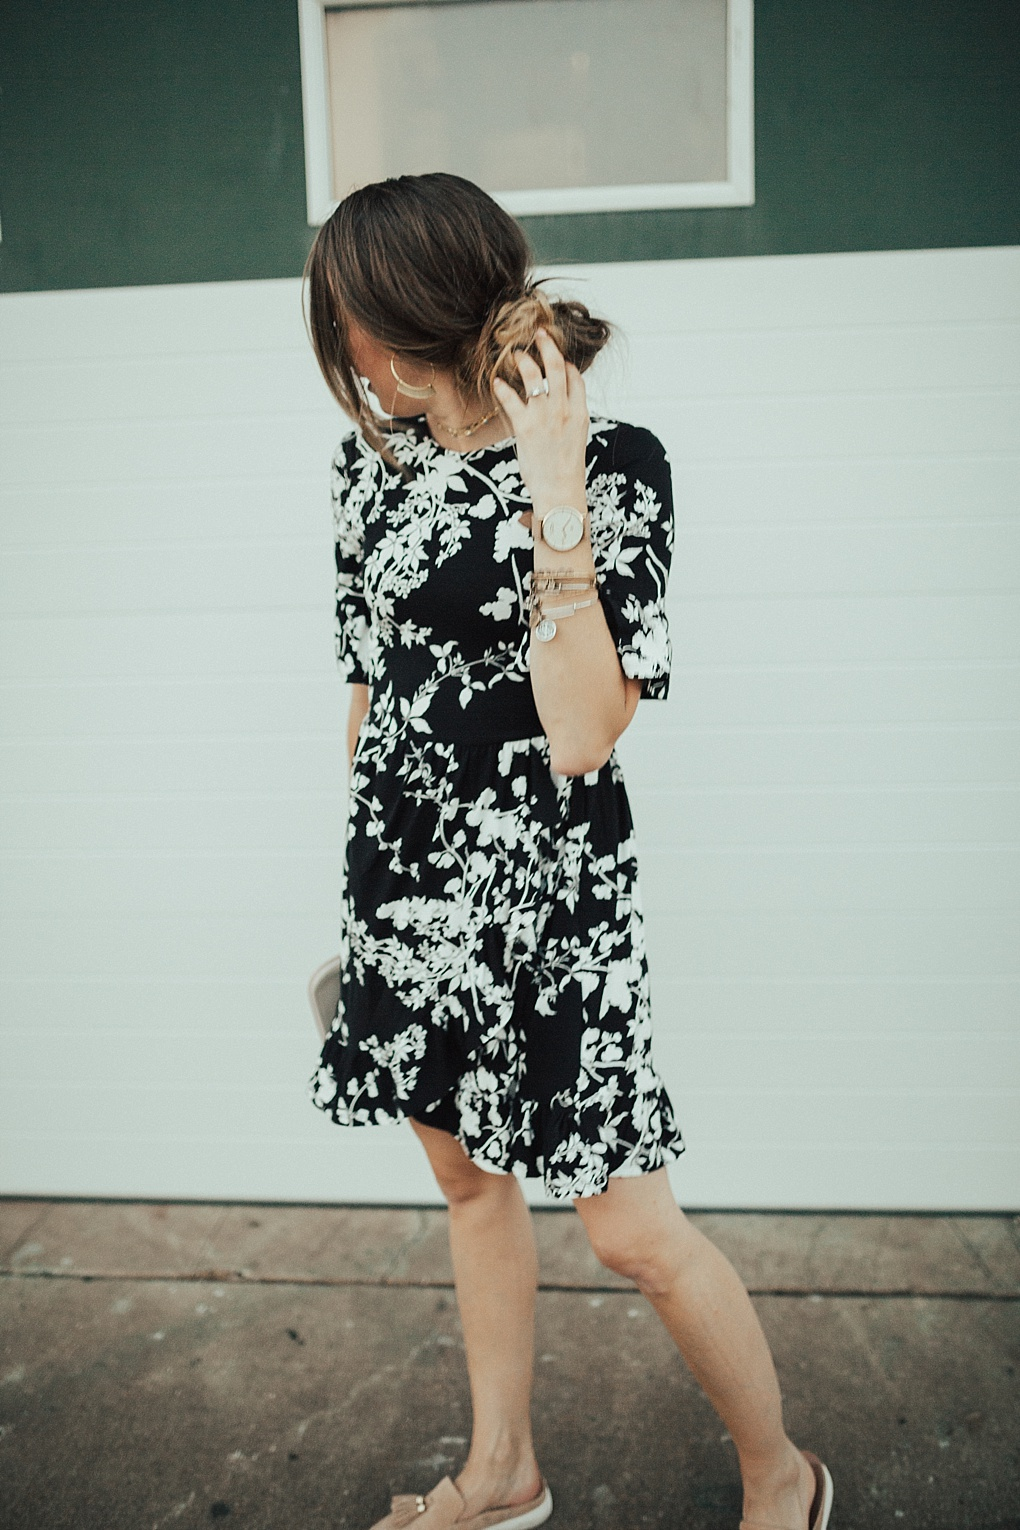 How to Style a Floral Wrap Dress for Fall by Utah fashion blogger Dani Marie